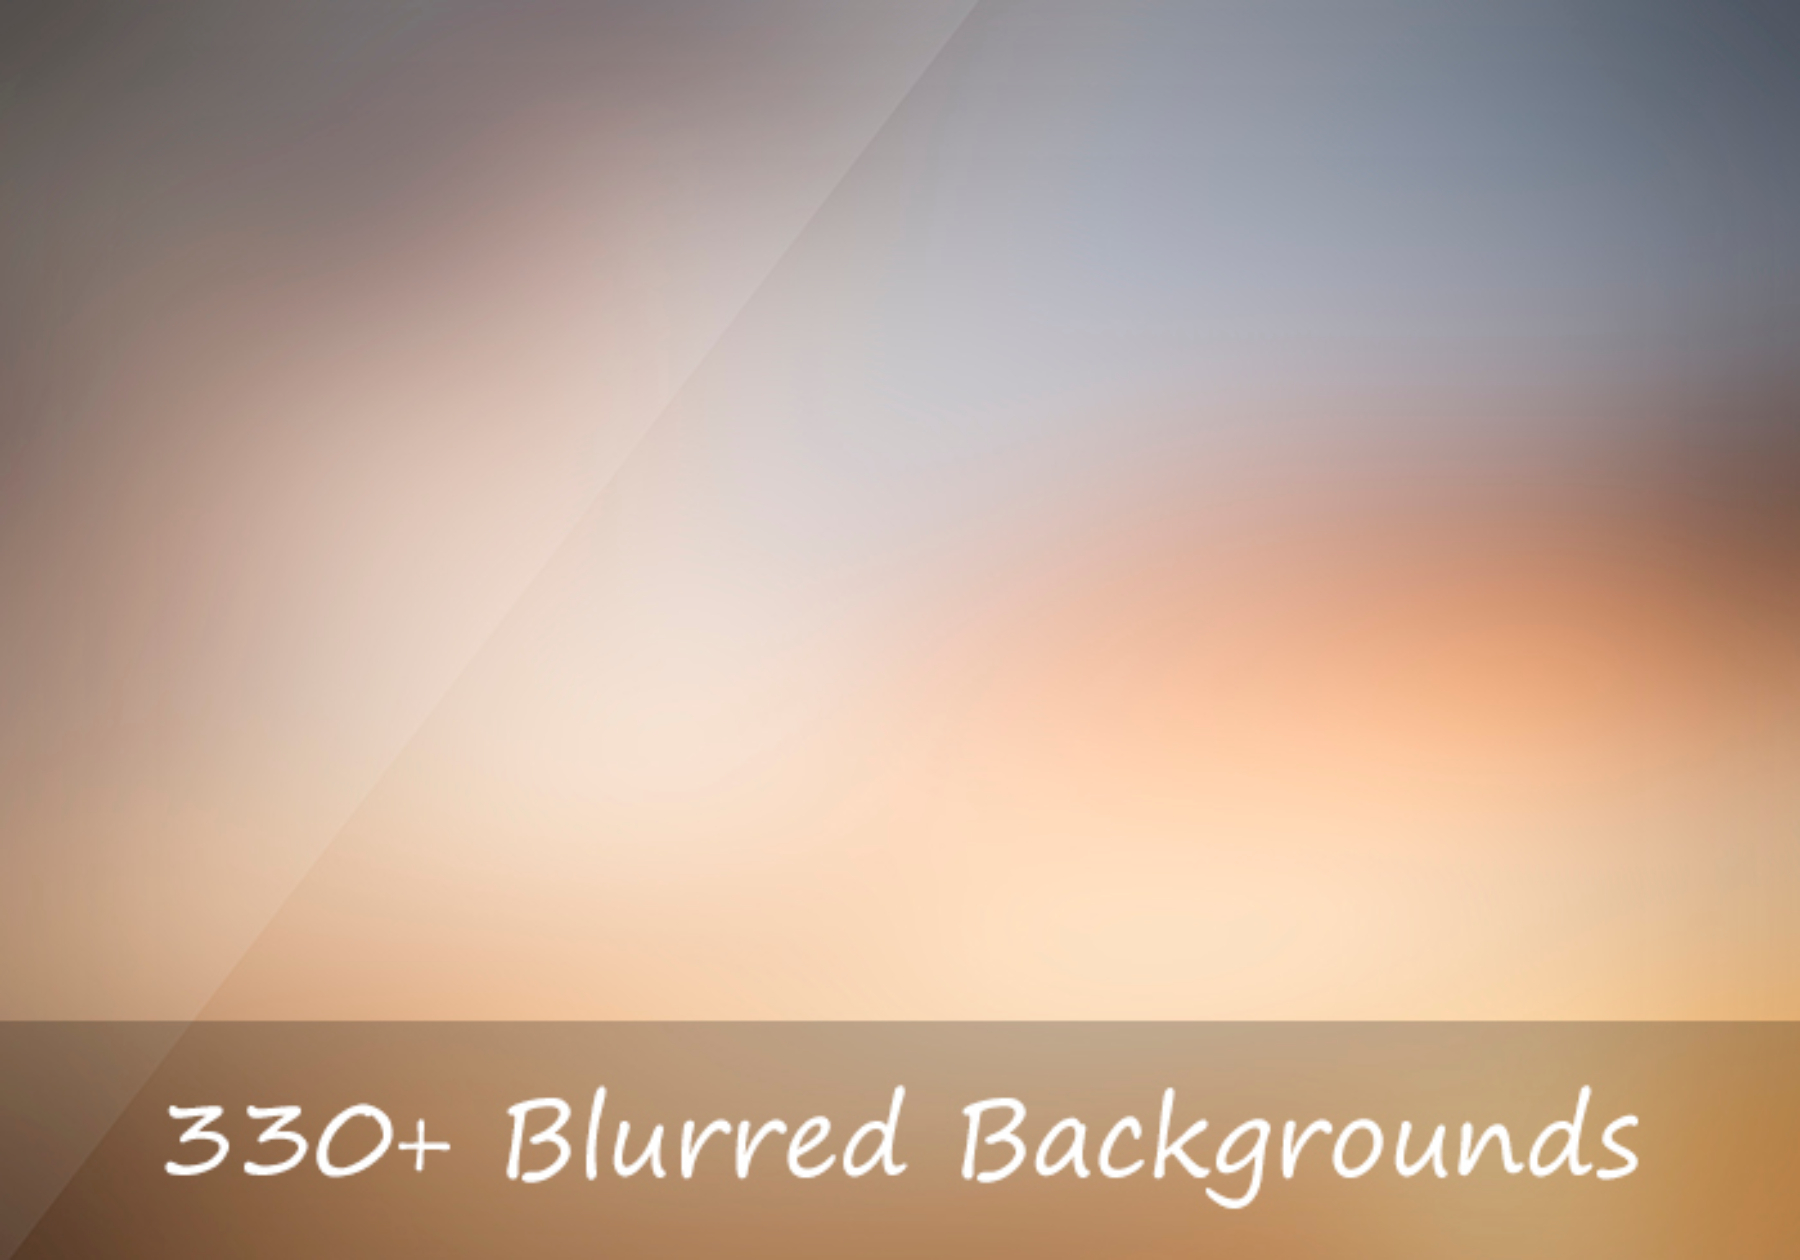 2000 High Resolution Backgrounds example image 10